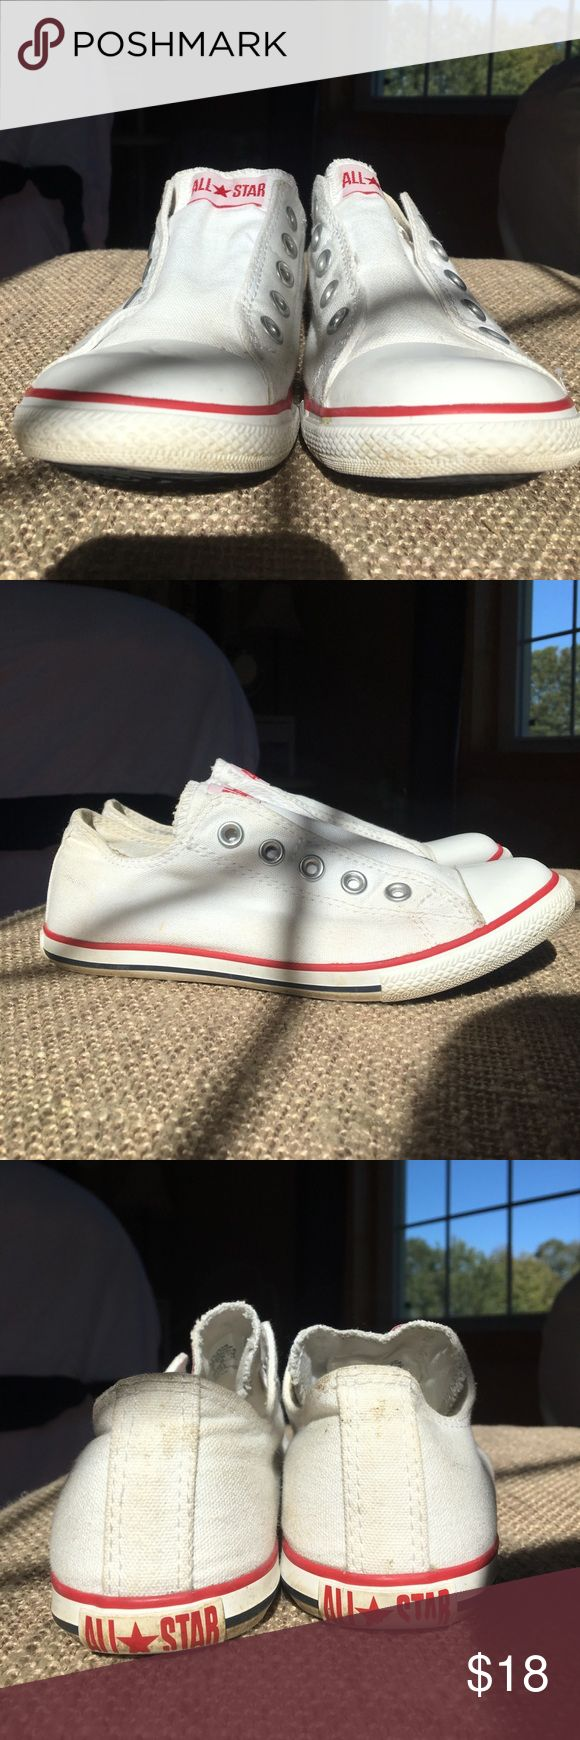 Converse slip on All Star sneakers 👟 Converse All Star sneakers. Lace-free by design, these slip on sneakers are the perfect casual by stylish twist any time of year. They are white with red detailing around the soles. These sneaks have been used lightly and have some slight areas where the white isn't as vibrant due to normal wear around grass/dirt as seen in photos. Still have so much life left in them! Converse Shoes Sneakers